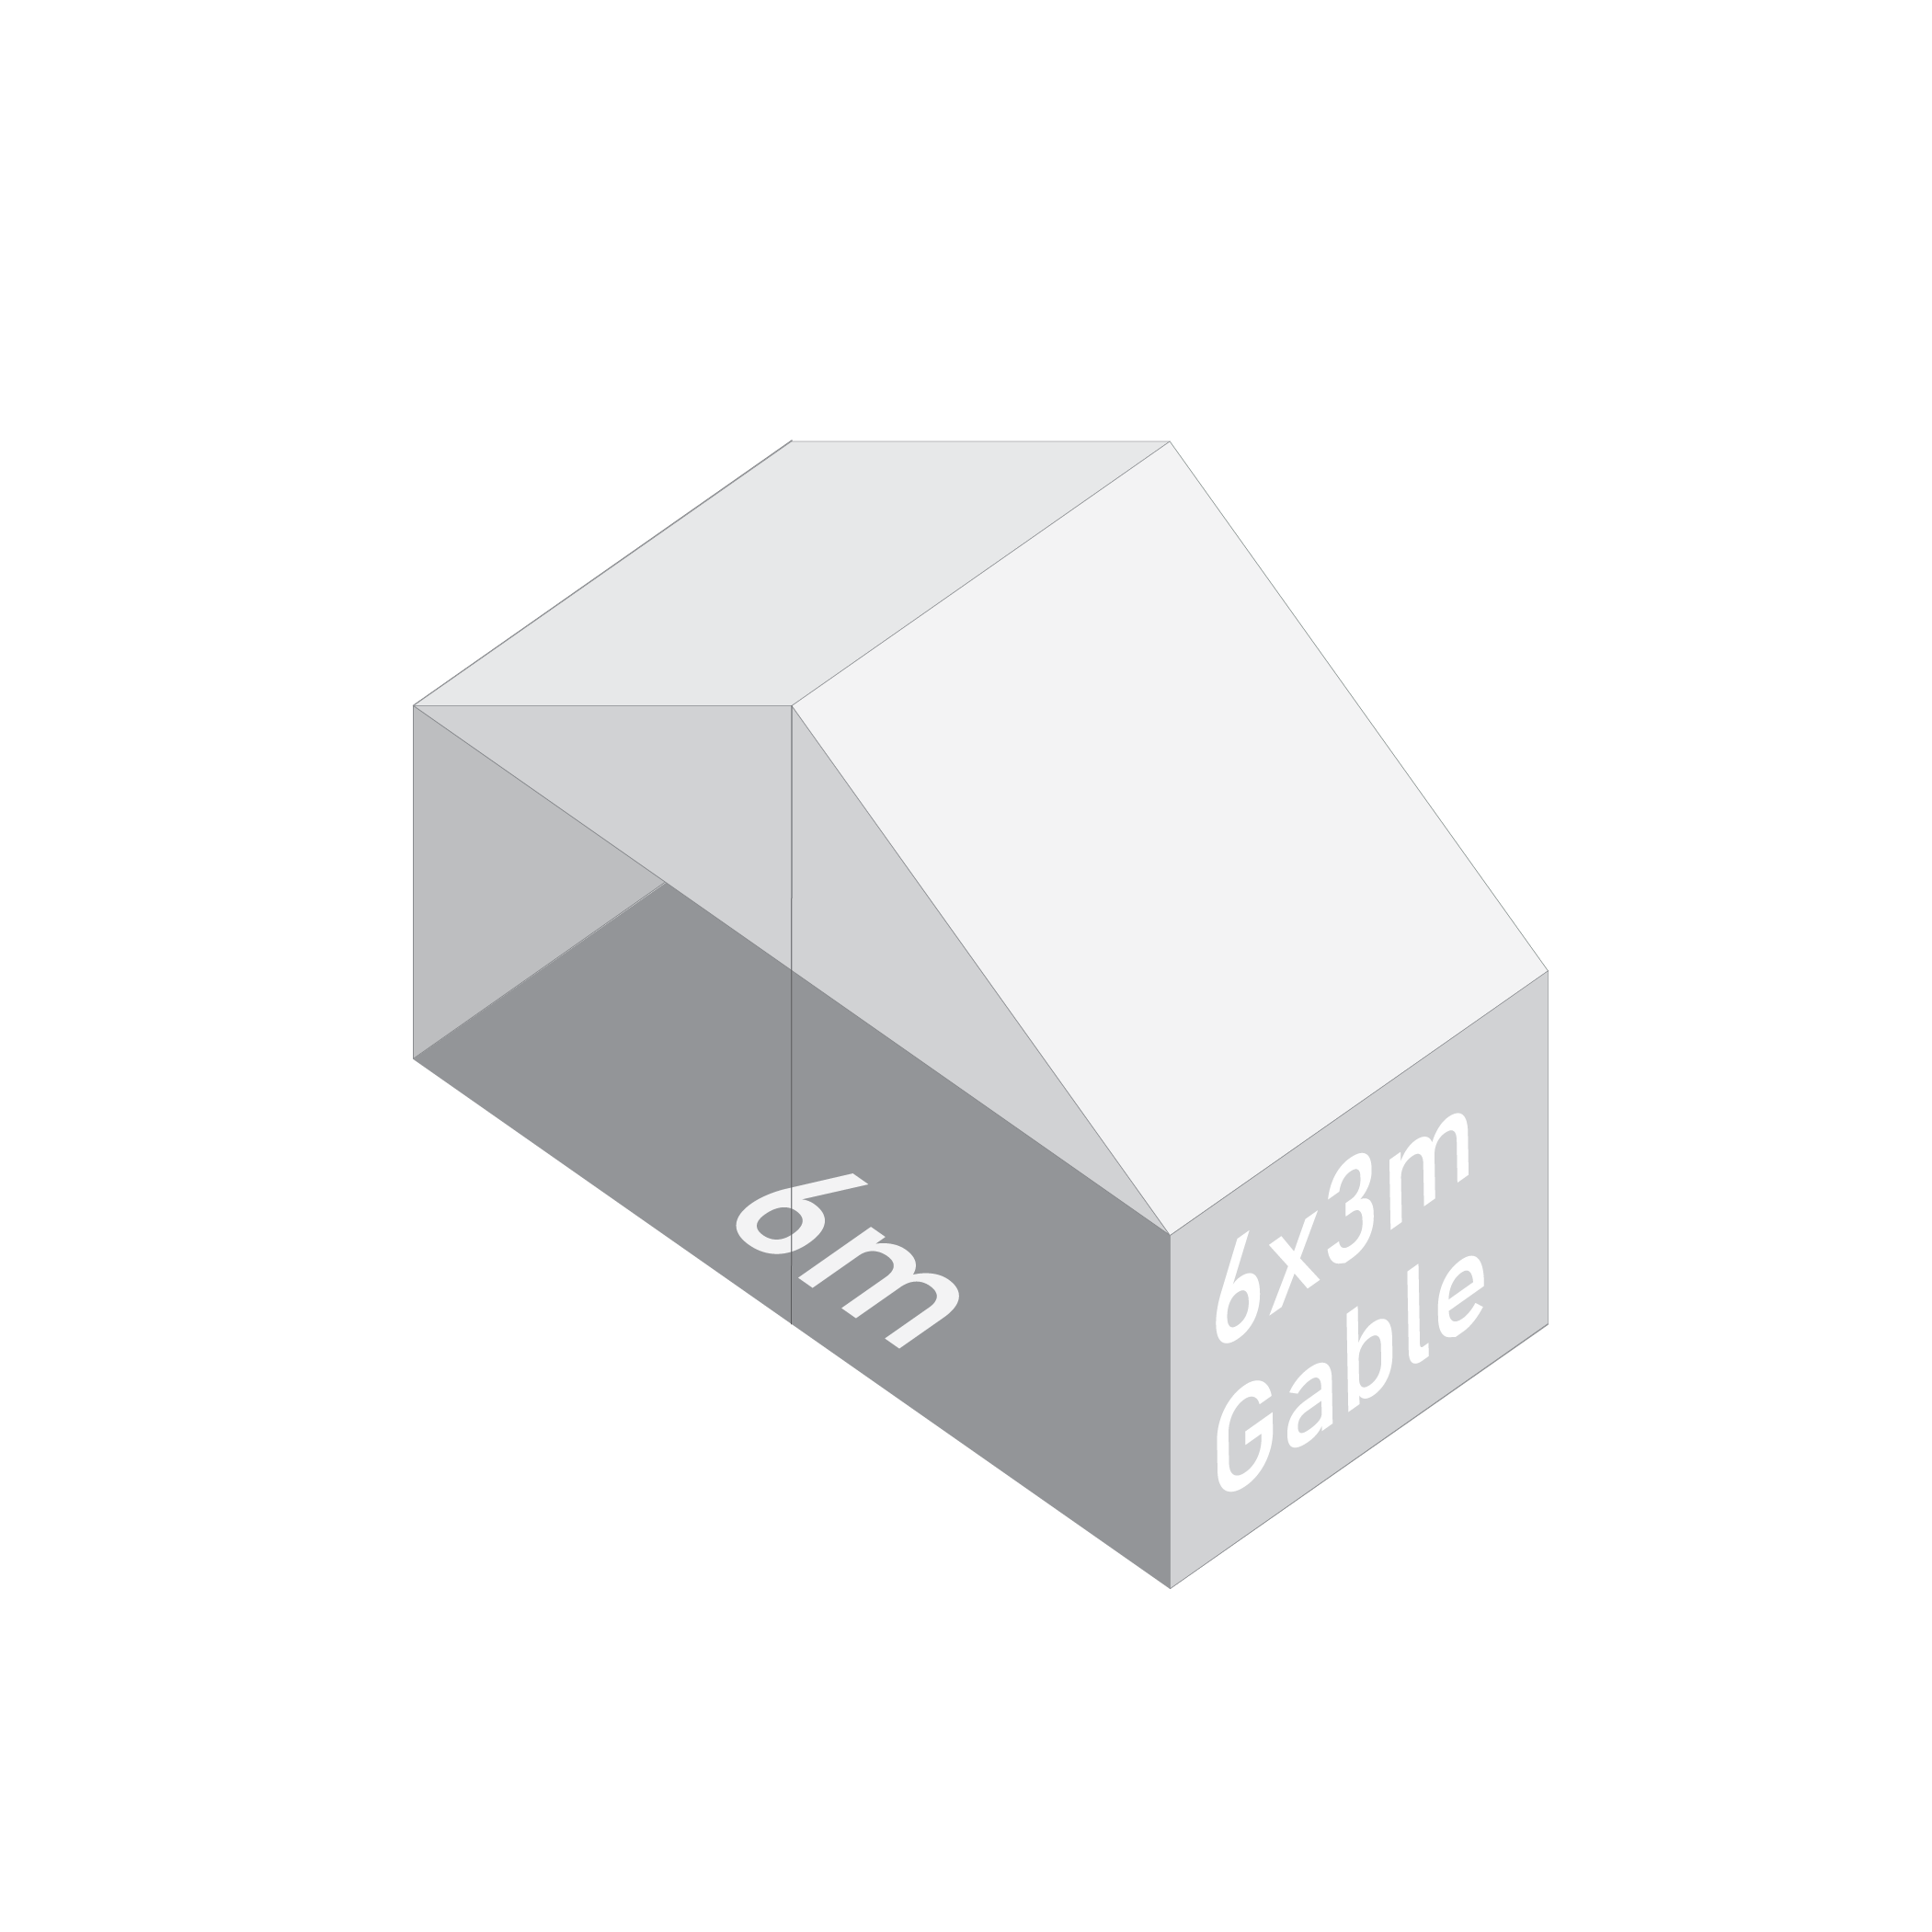 icon 6x3.png